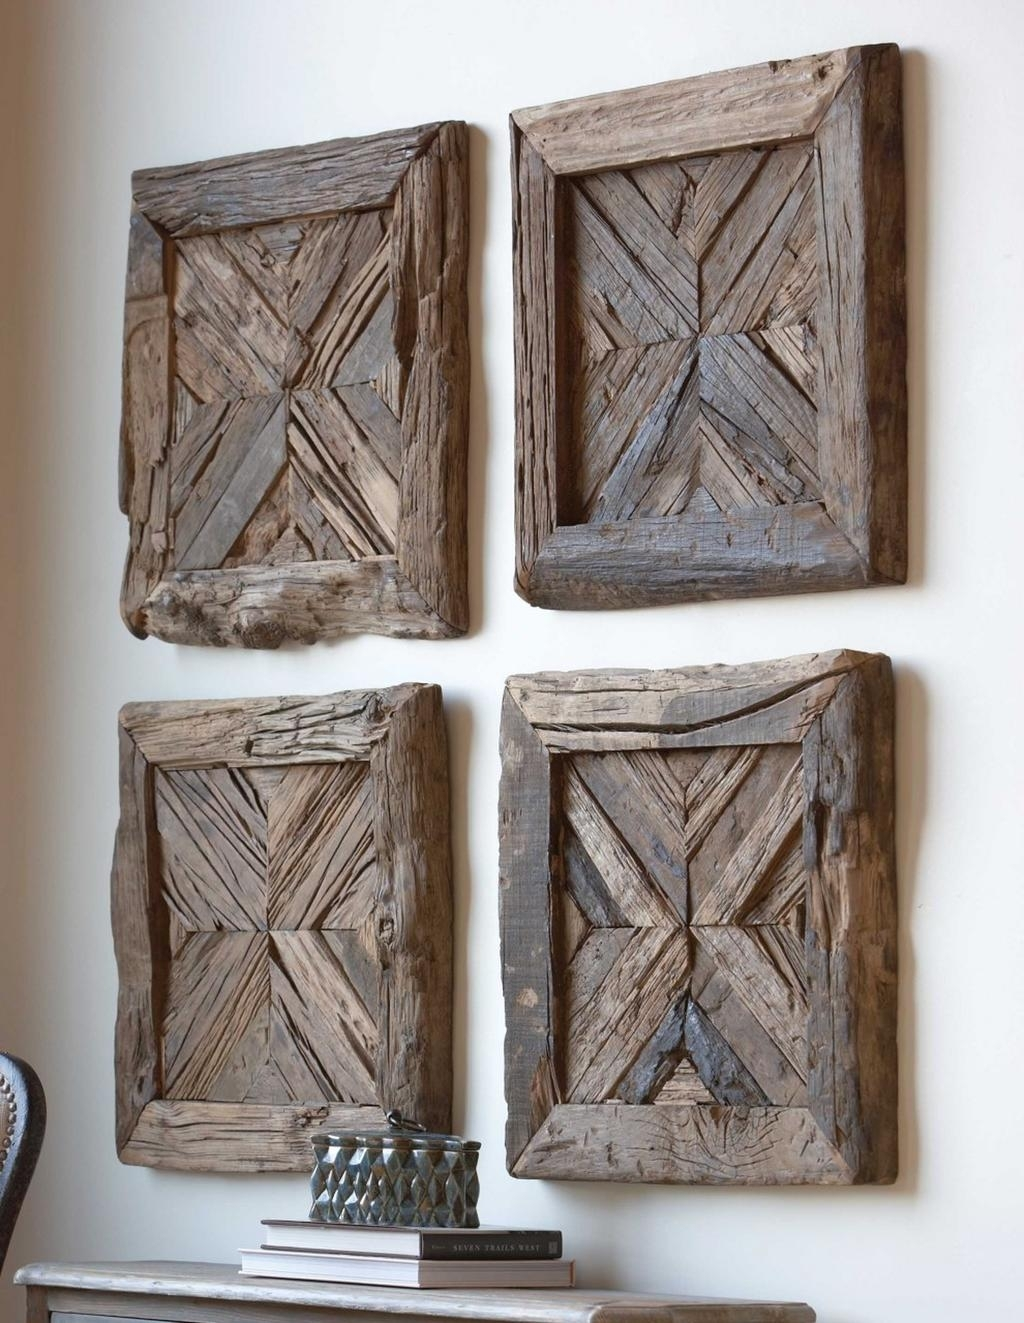 63299+ Great Examples Of Rustic Wall Art Furniture Home Design Ideas For Latest Rustic Wall Art (View 3 of 15)